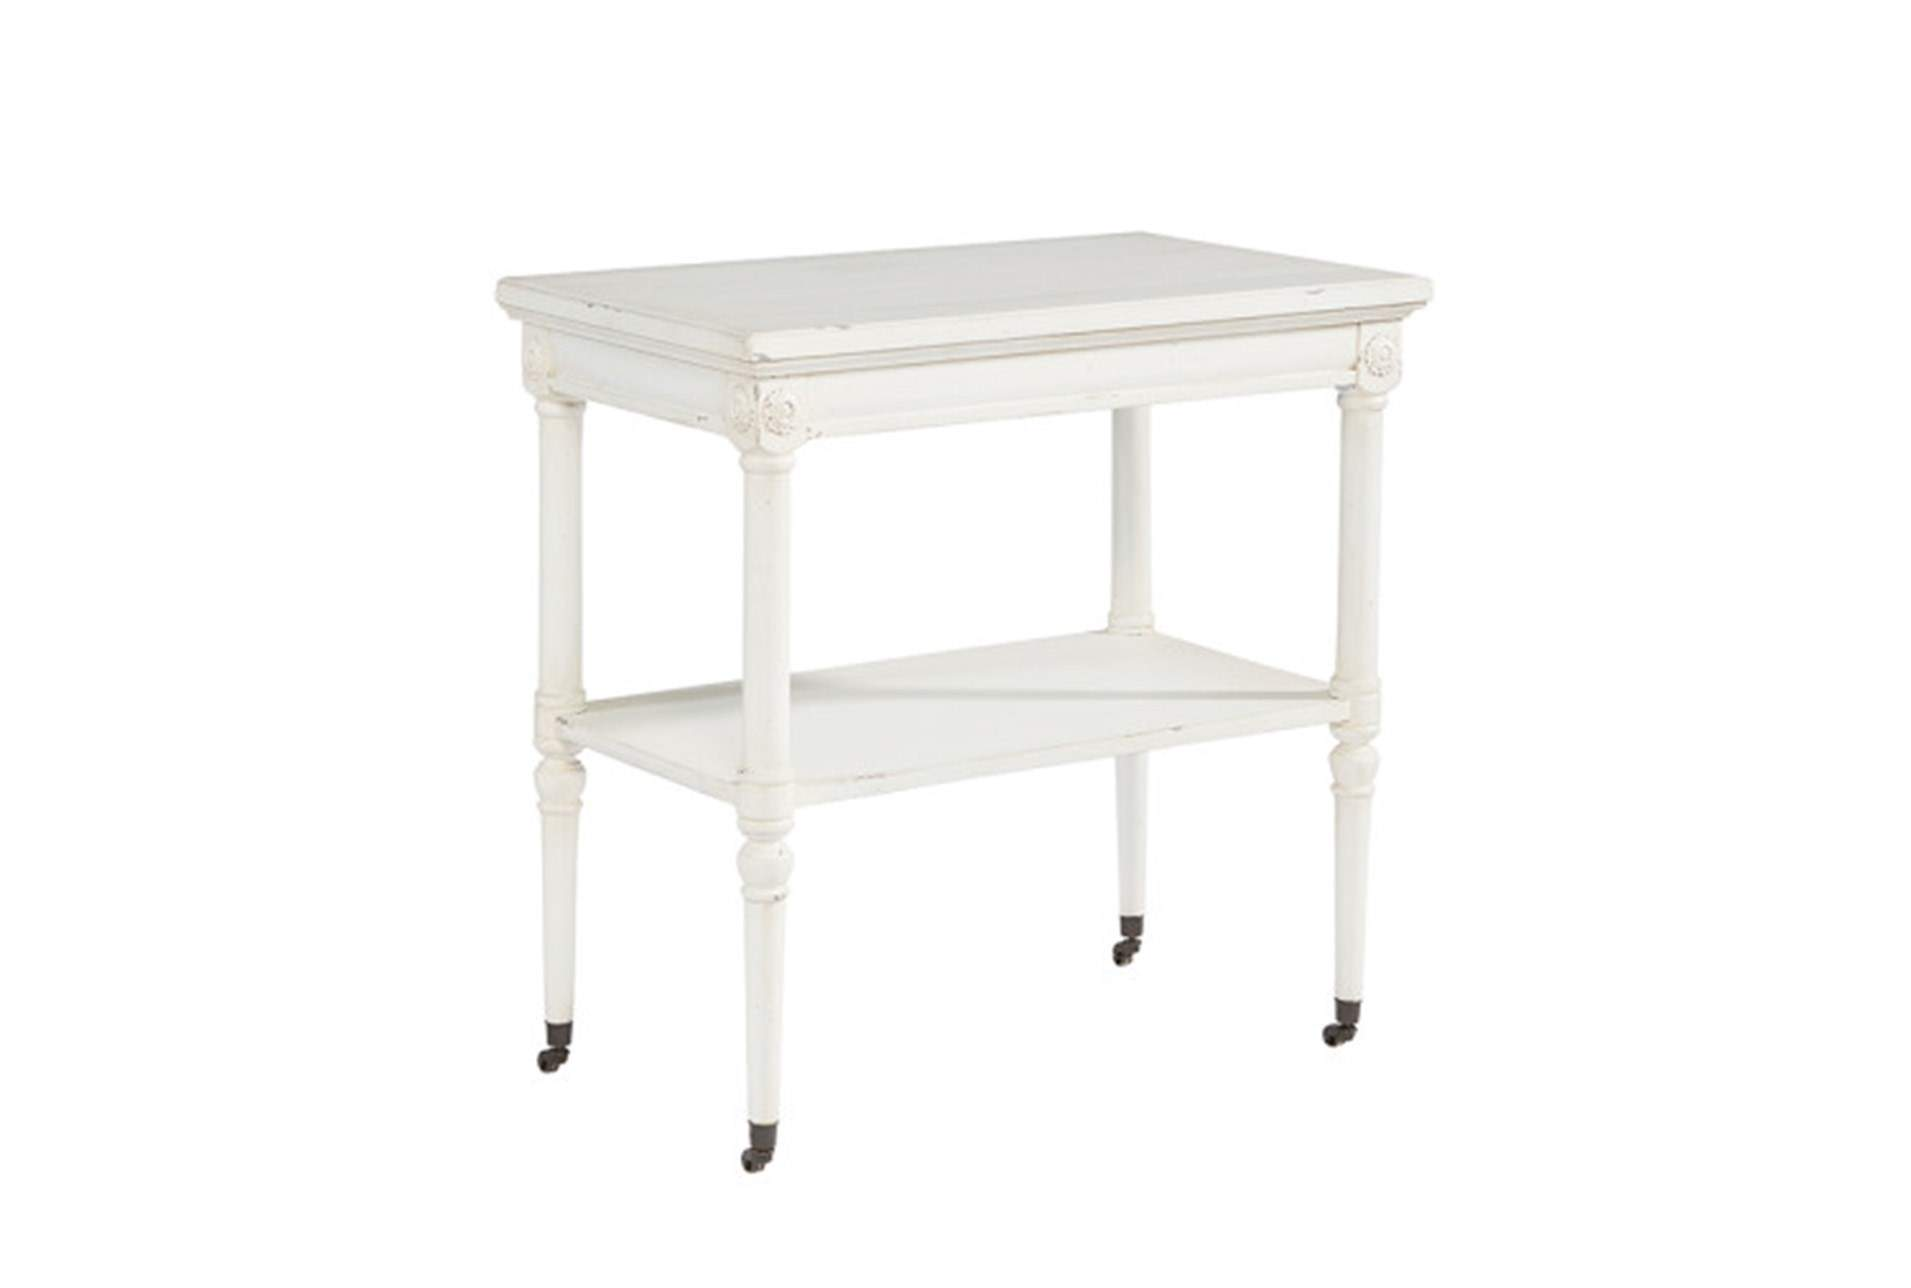 magnolia home petite rosette white accent table joanna gaines sofa qty has been successfully your cart pier imports patio furniture tall end tables with drawers square corner